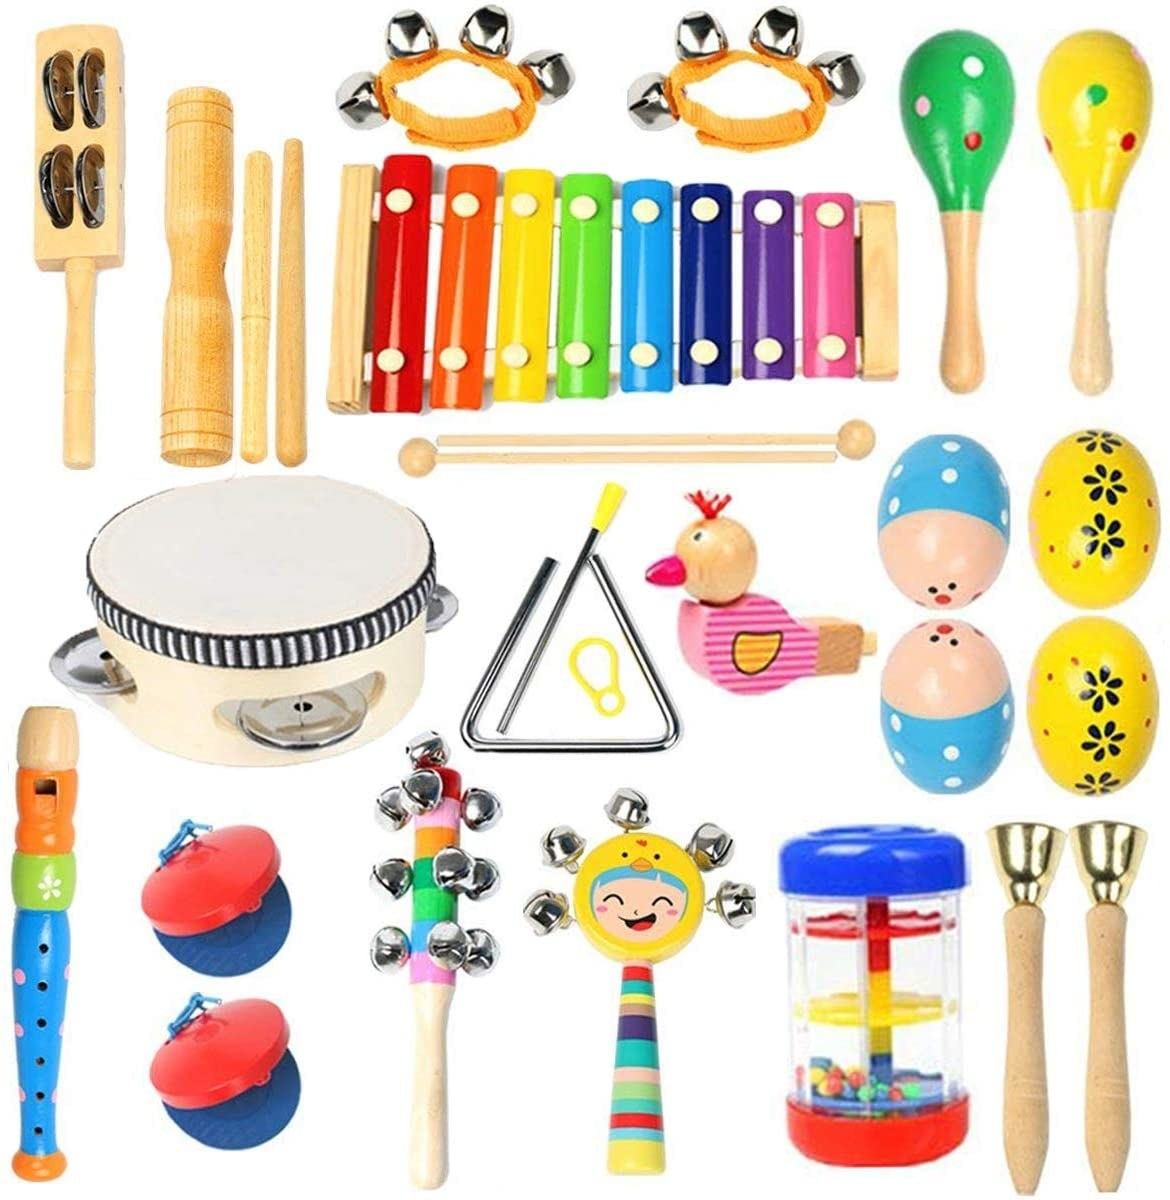 A colorful array of wooden instruments